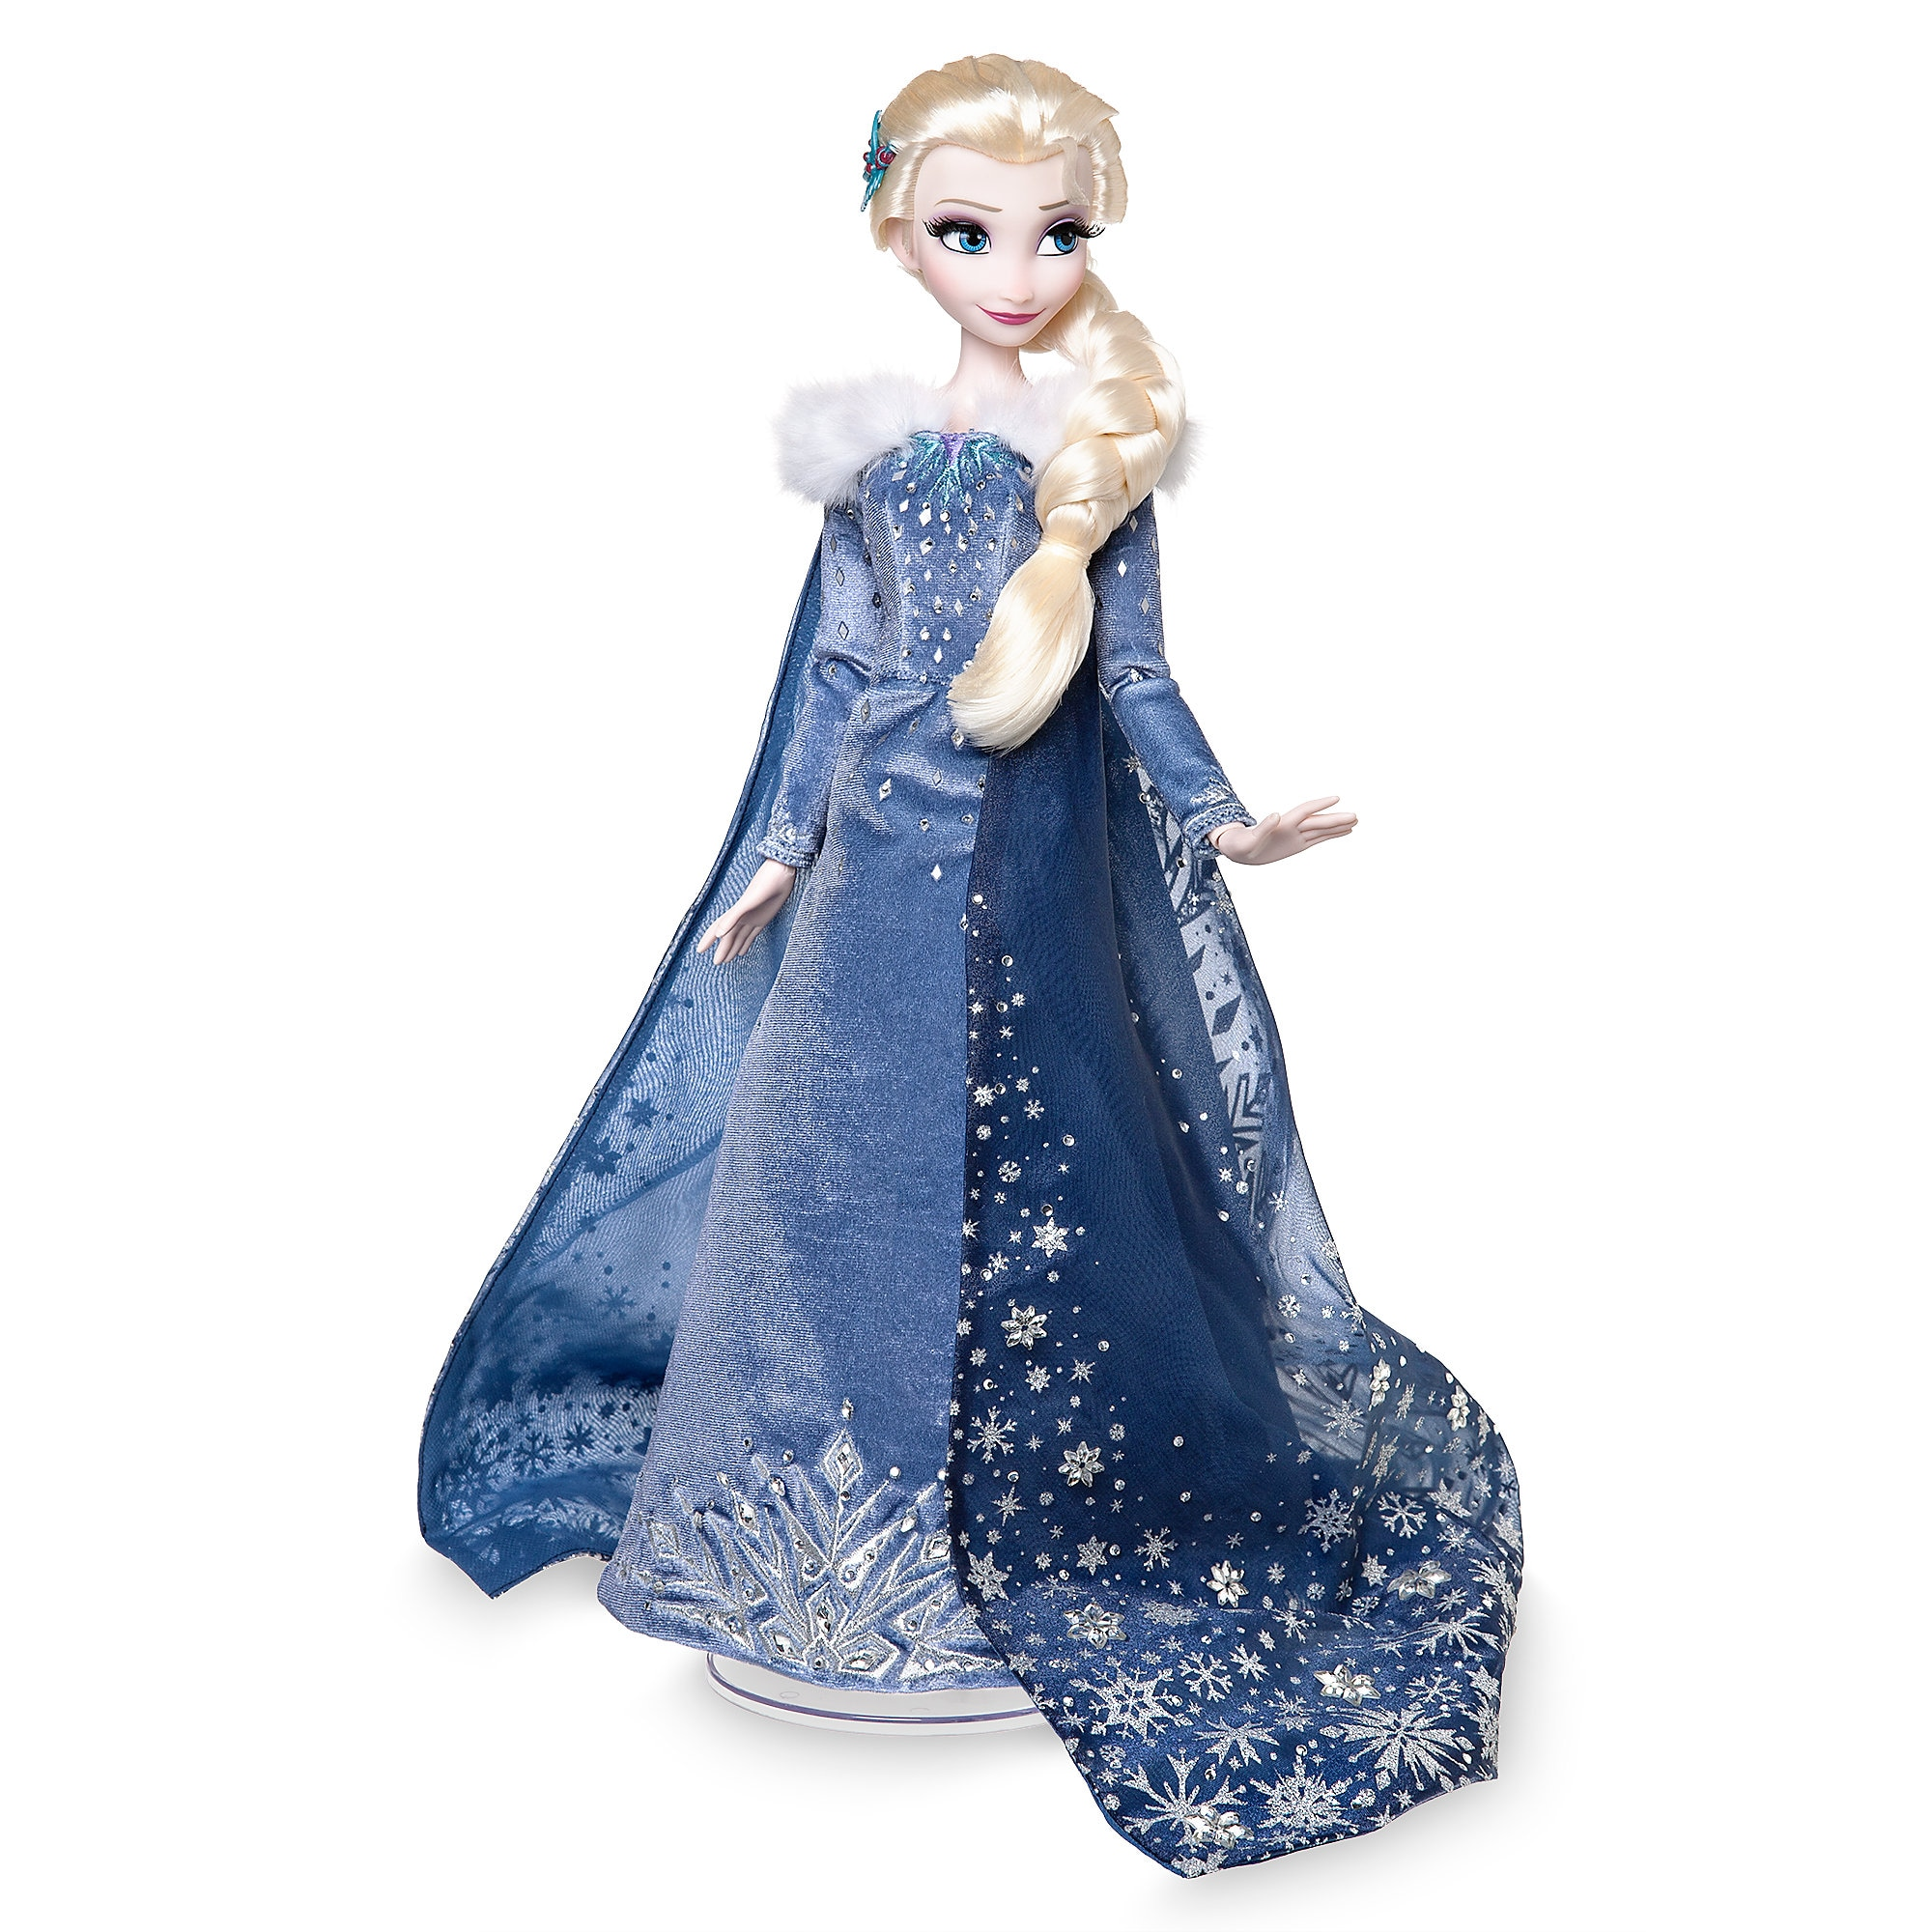 Classic Fashion Elsa Exquisite Craftsmanship; Dolls, Clothing & Accessories Disney Frozen